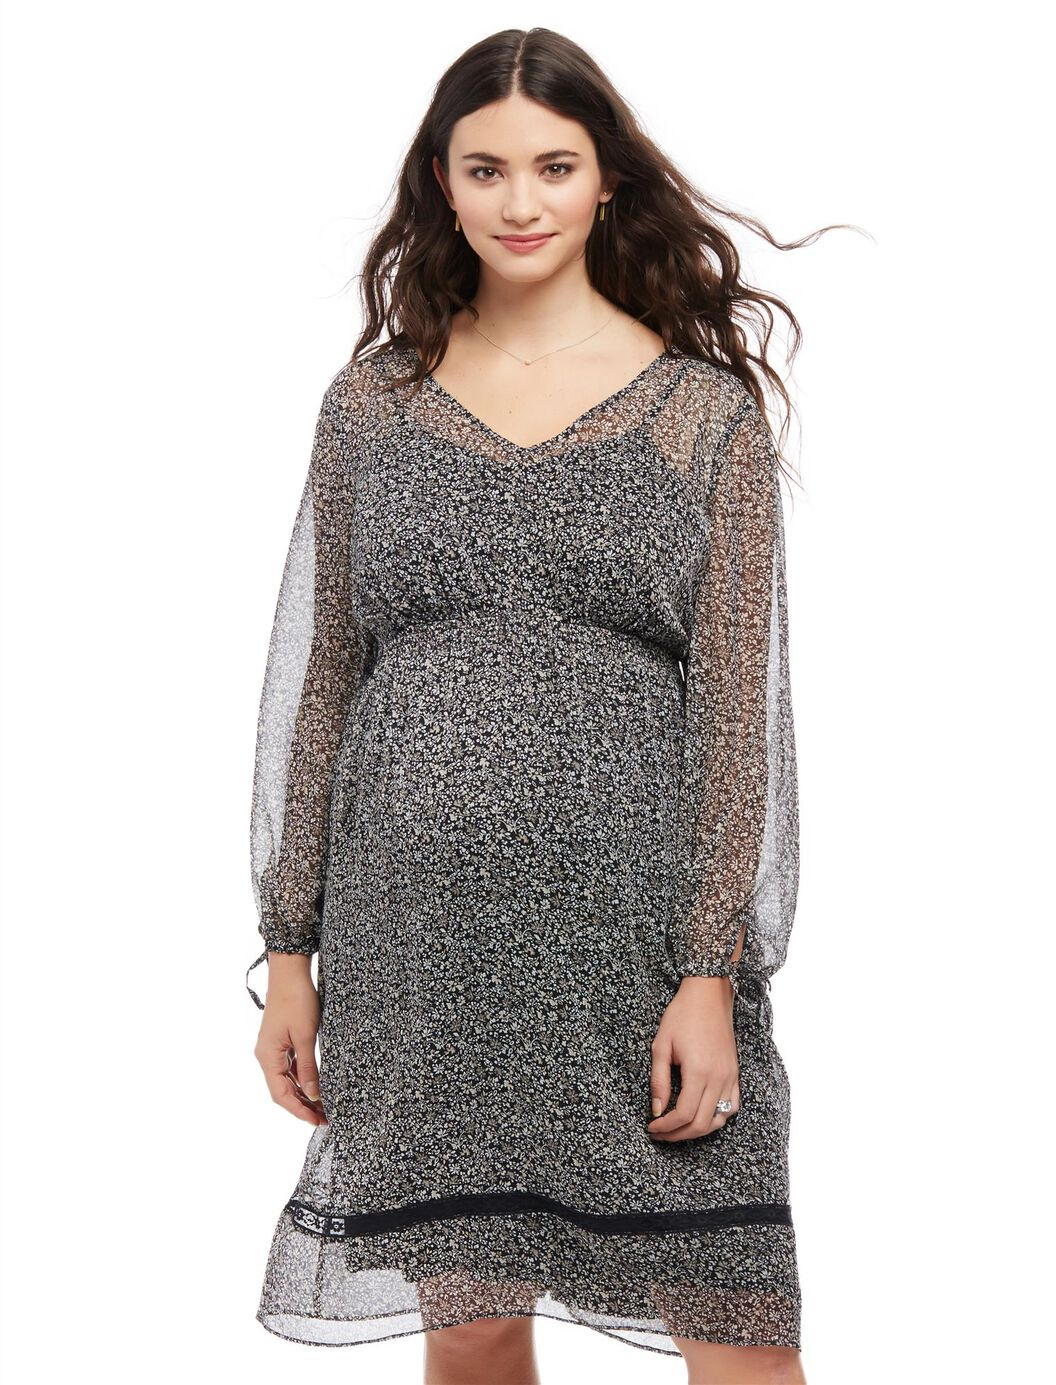 Plus size jessica simpson lace body con maternity dress plus size ditsy floral maternity peasant dress ombrellifo Image collections